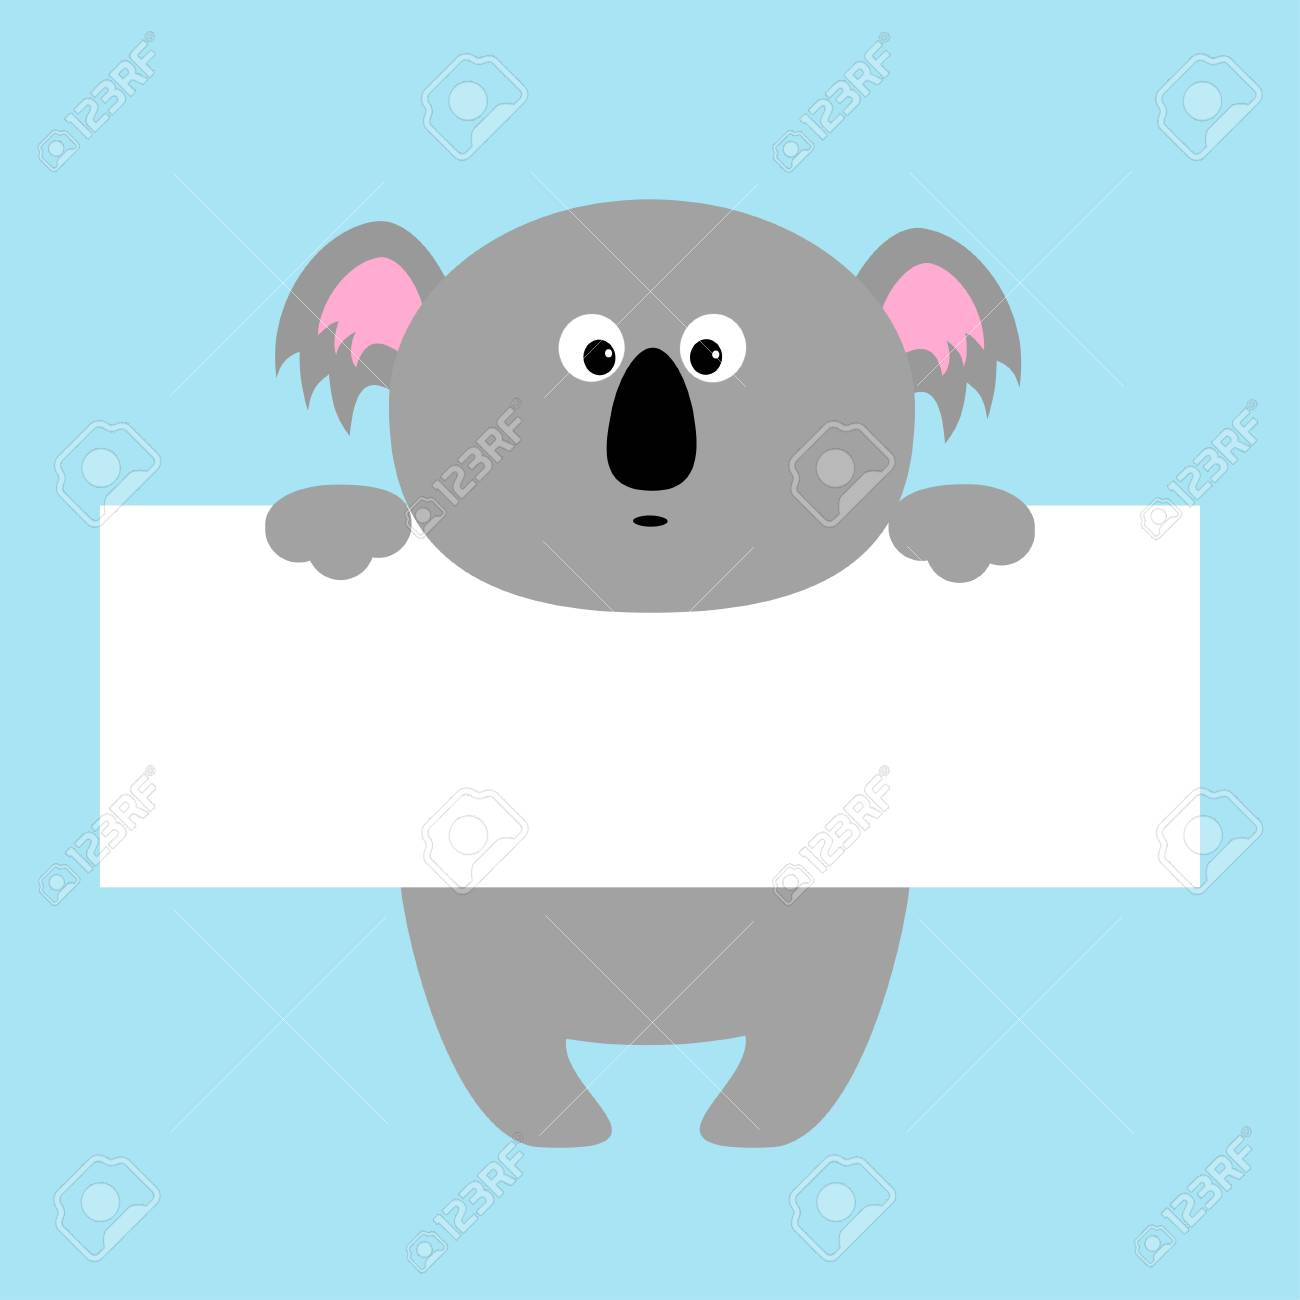 funny koala hanging on paper board template cute cartoon character